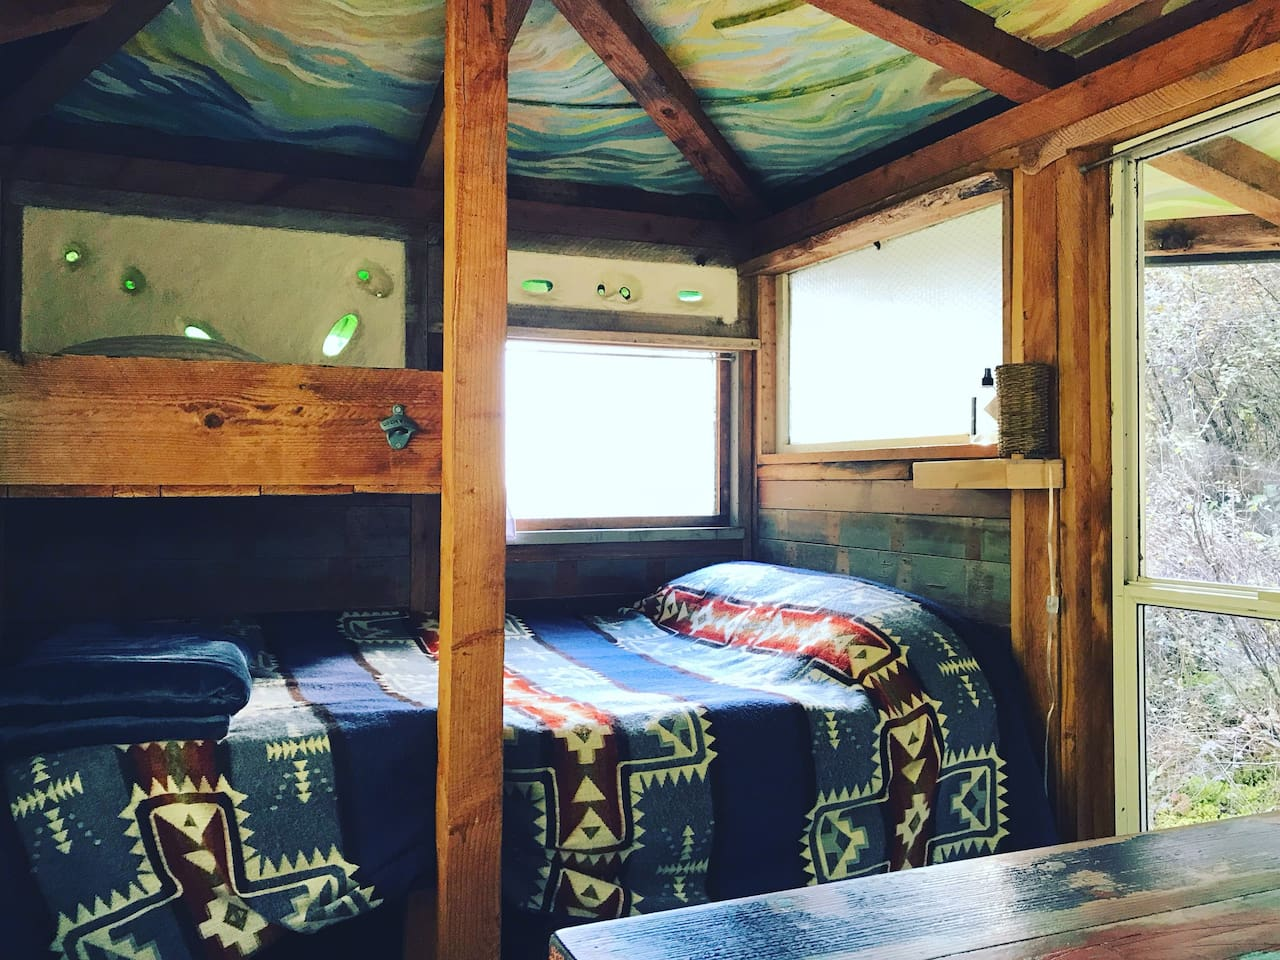 Sleeps two on a queen-ish size bed with a lofted space for personal items.